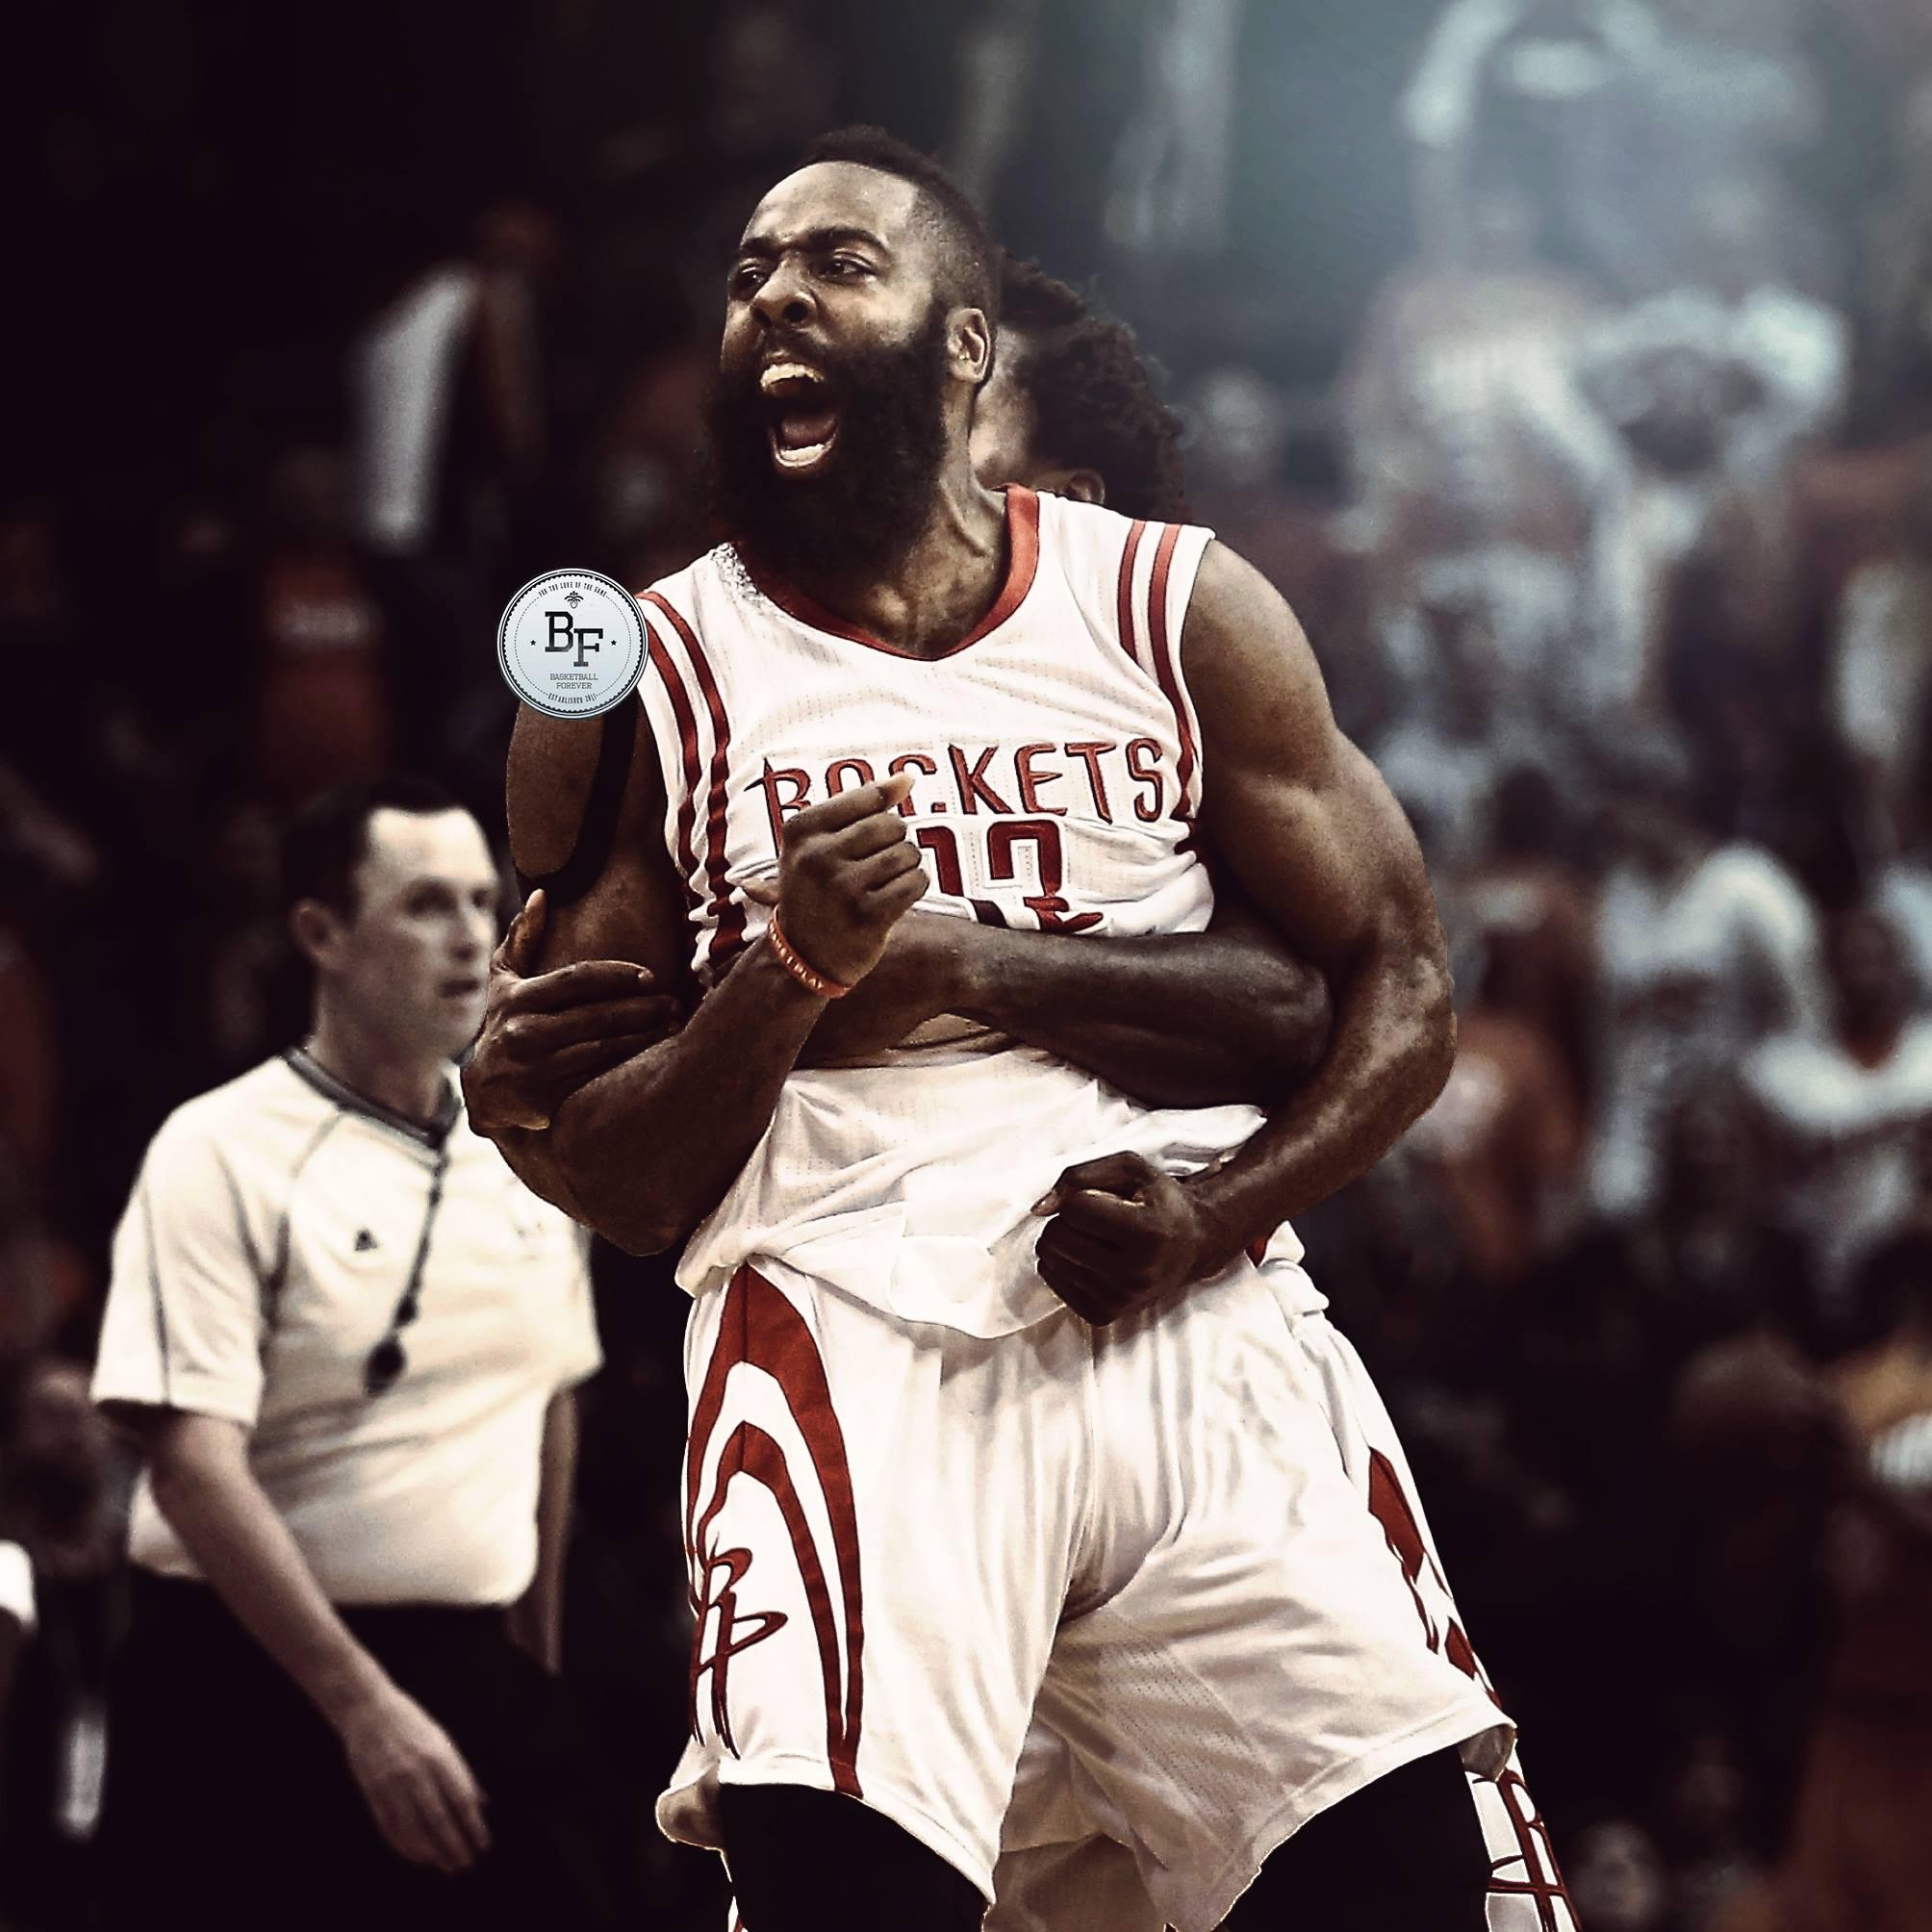 James Harden Nba Records: Most Improbable Triple-Doubles In NBA History